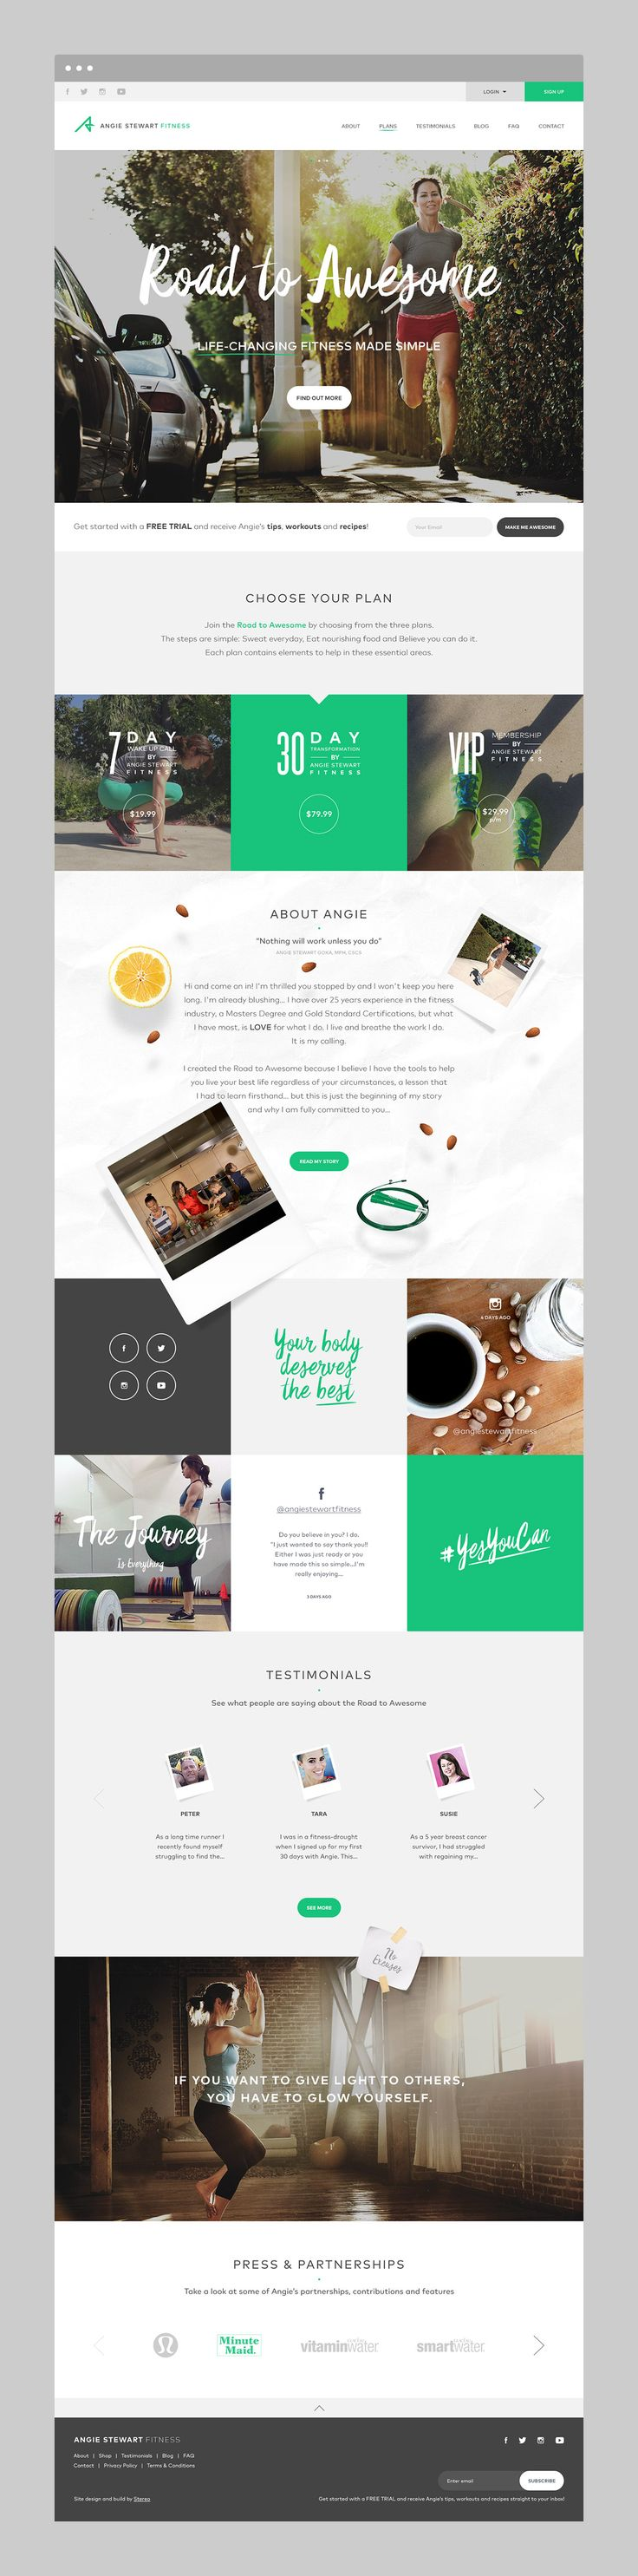 644 Best Images About Creative Web Layout Inspiration On